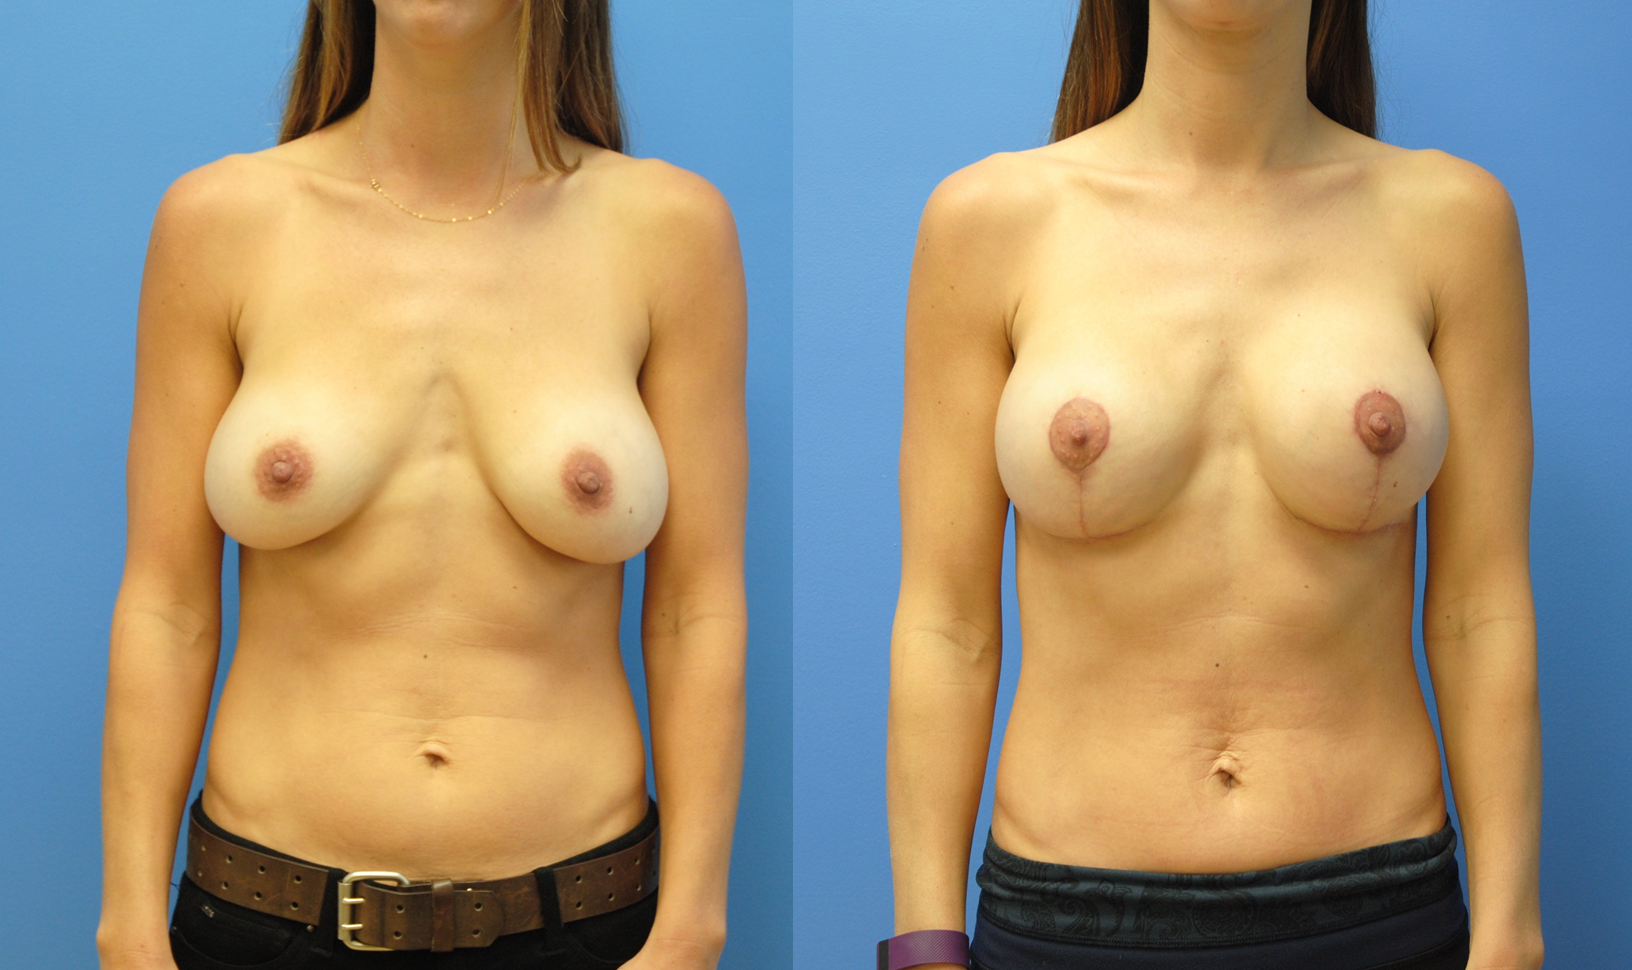 Mastopexy-Augmentation-Newport-Beach-Brian-Dickinson-M.D.